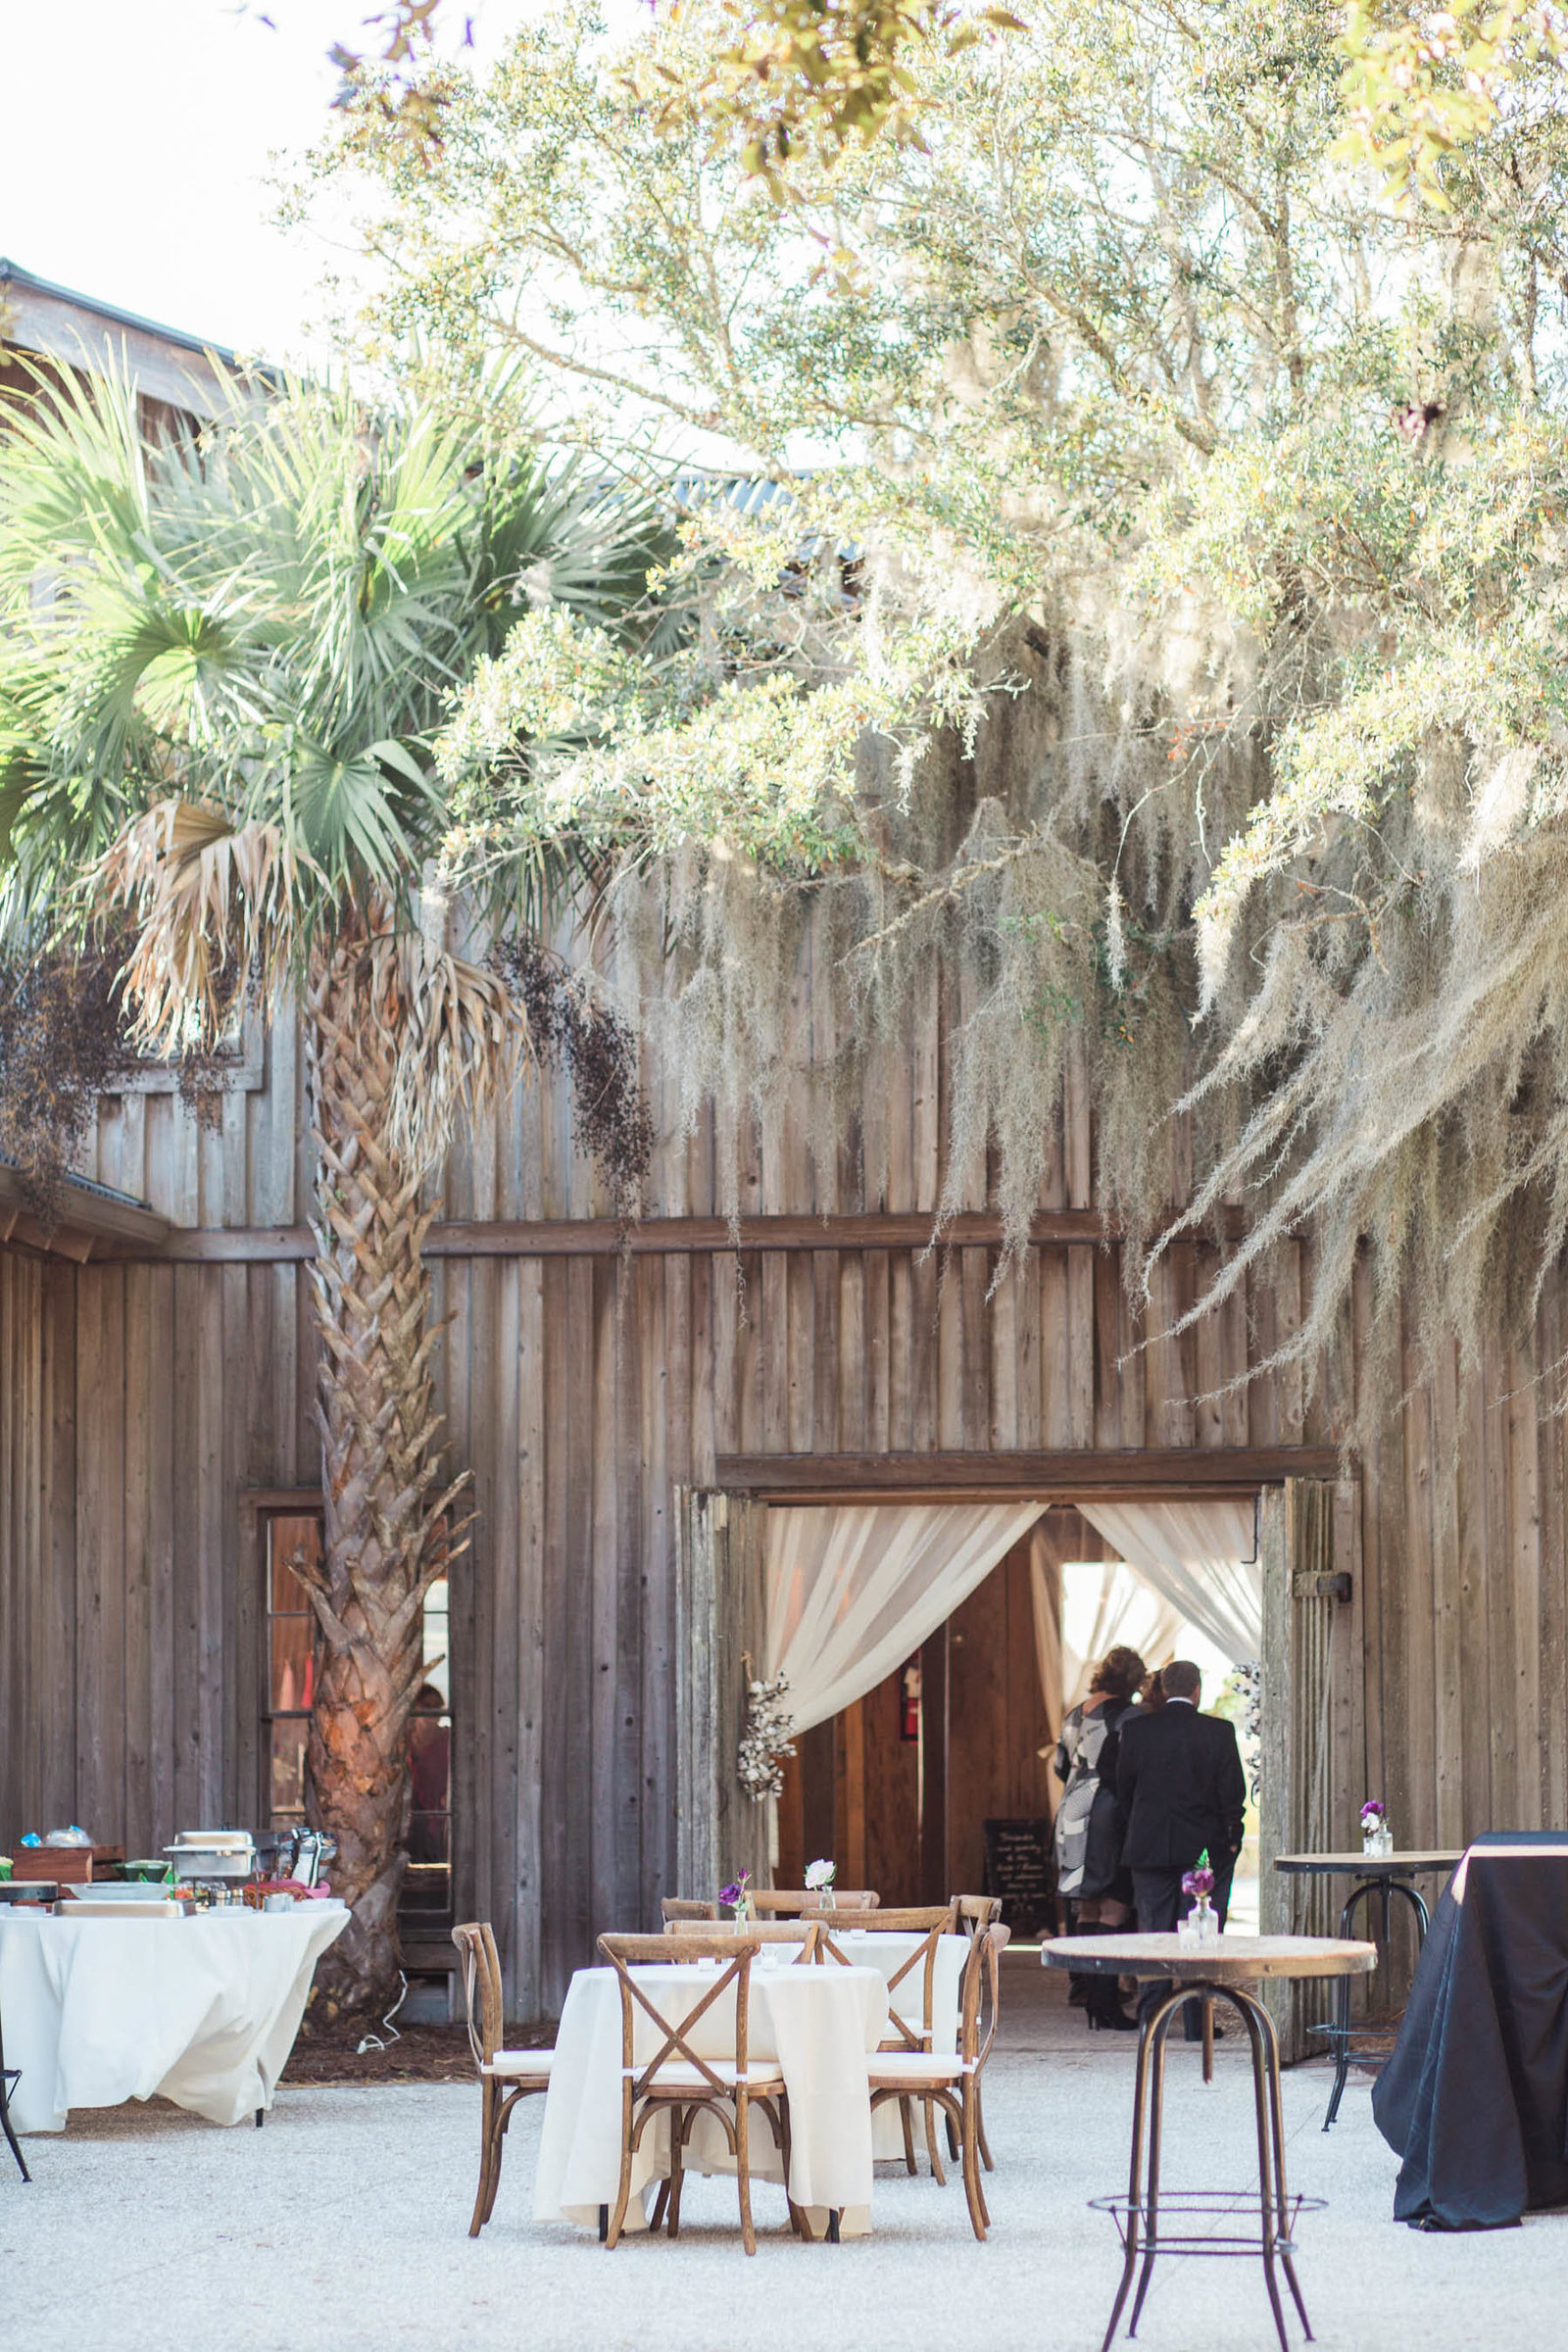 Cotton Dock is set up for reception, Boone Hall Plantation, Charleston, South Carolina